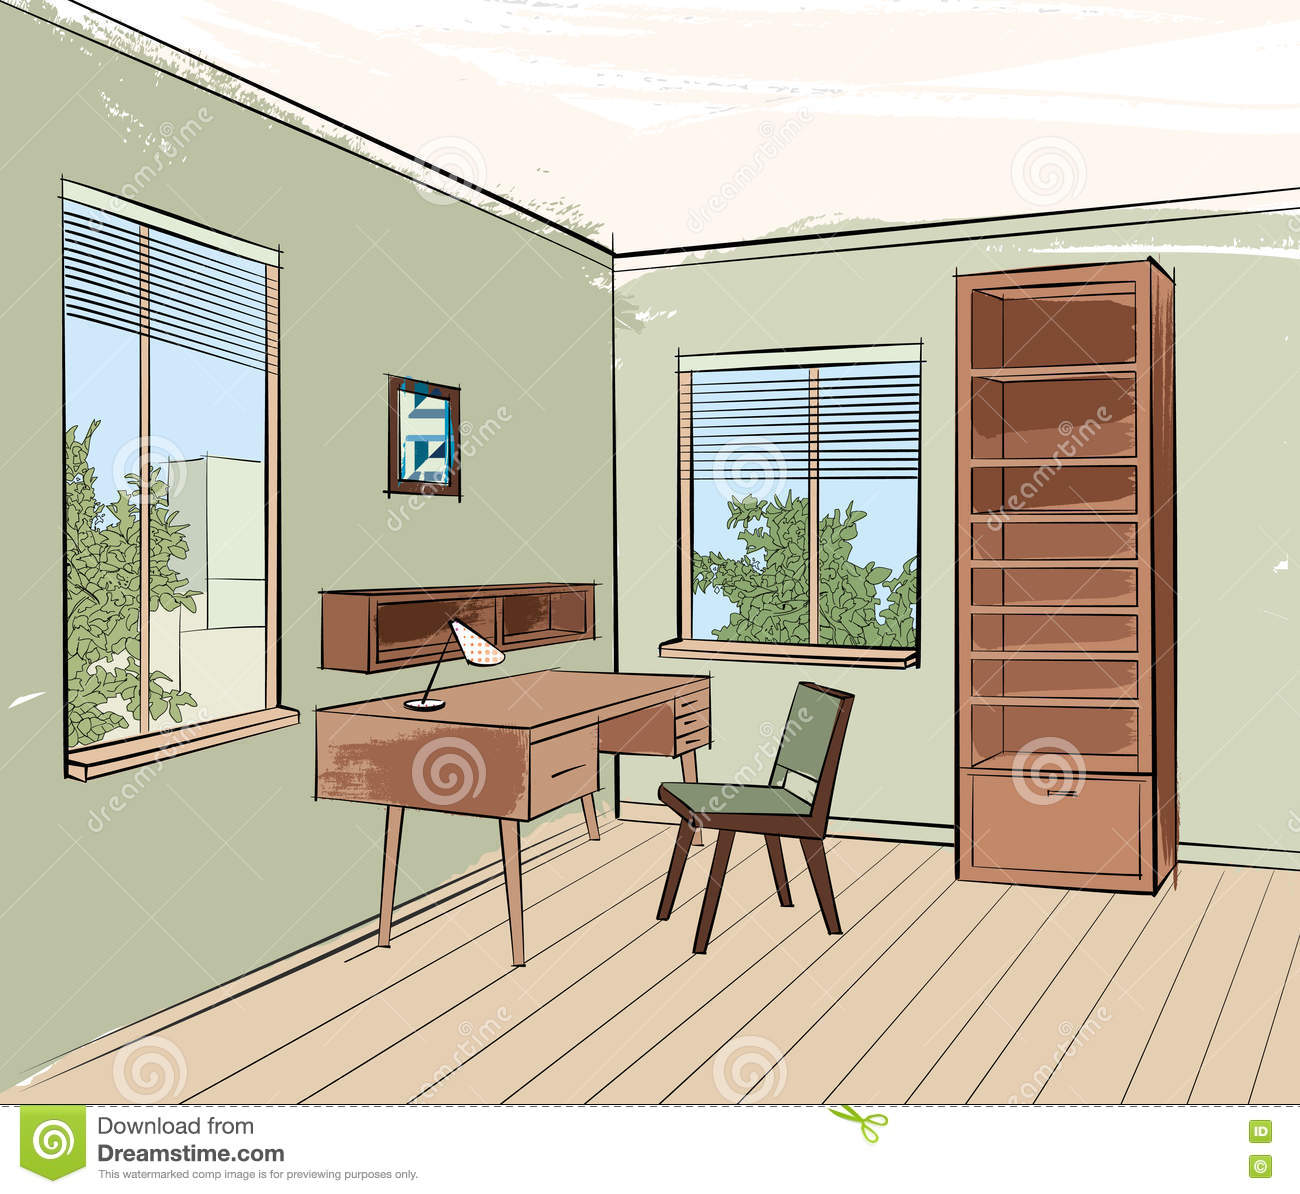 Home interior work place furniture living room sketch for Window design sketch